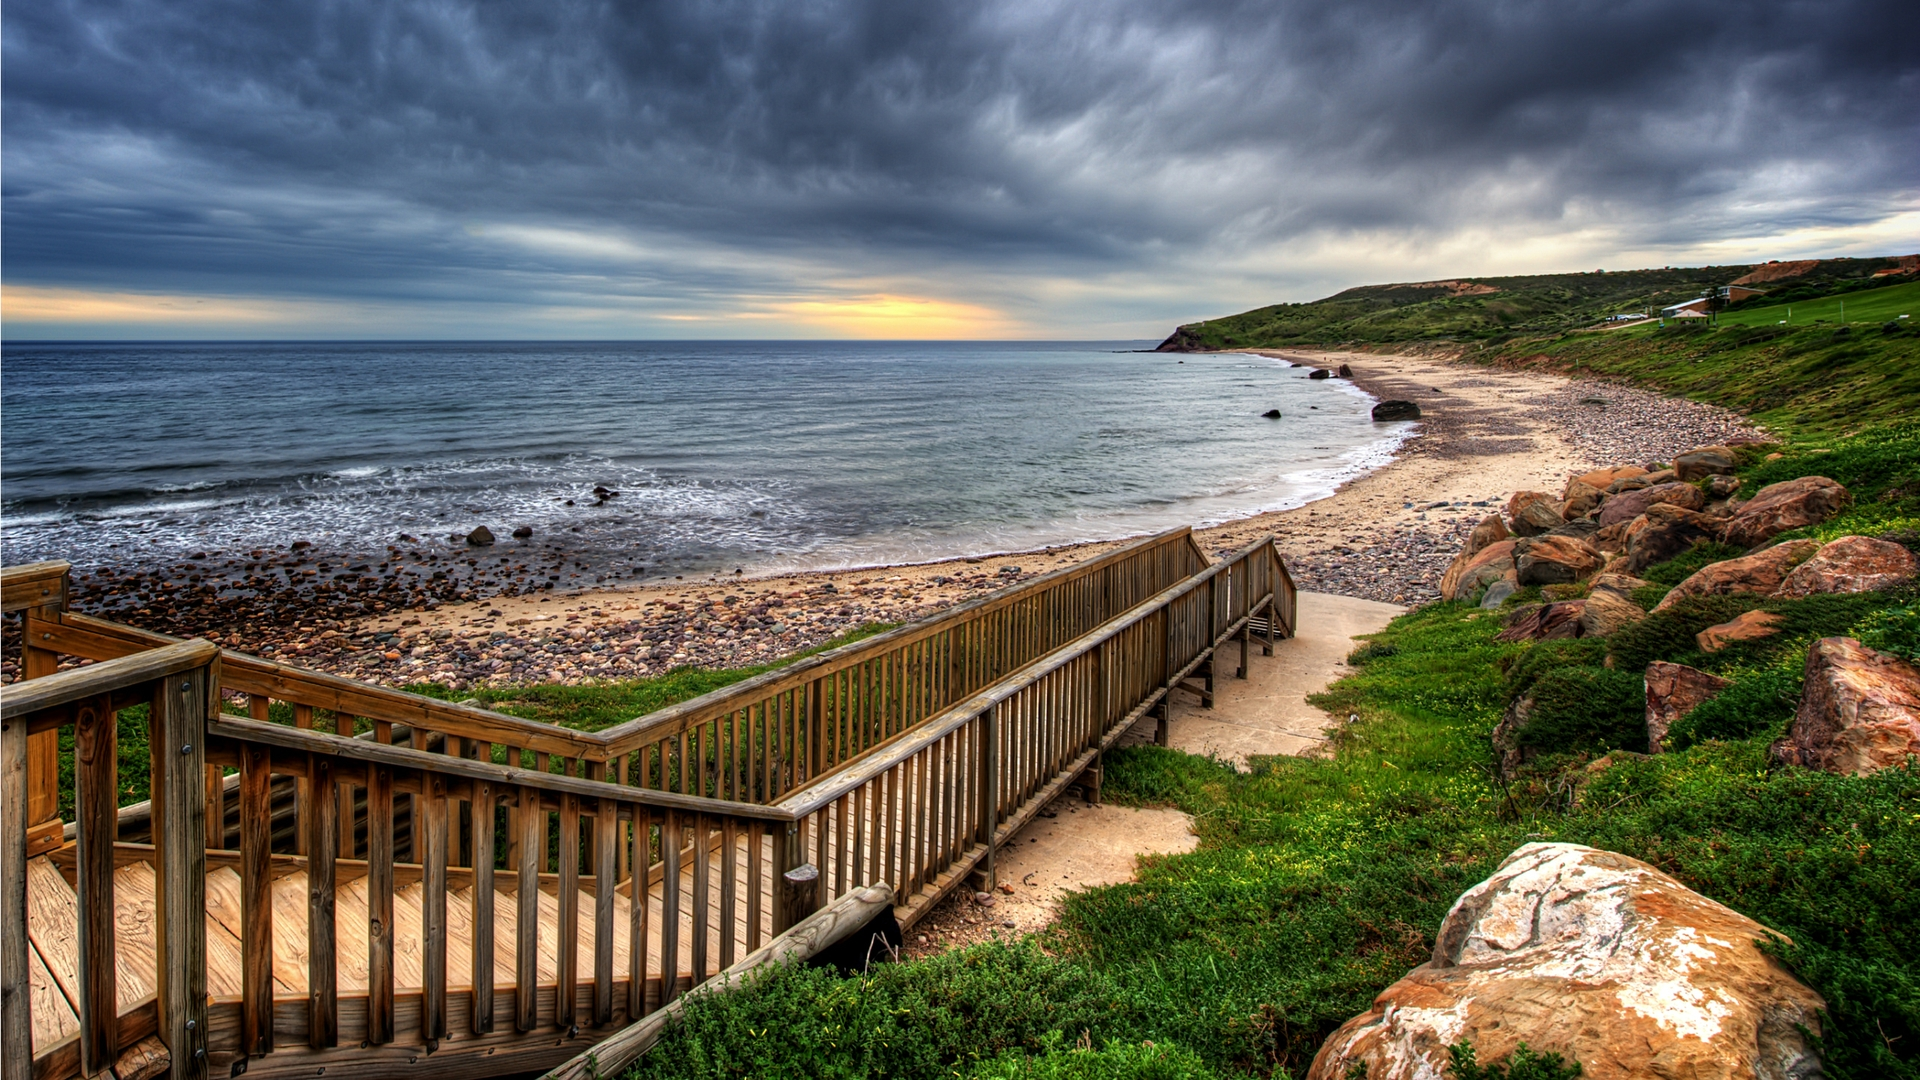 """Download the following HDR Beach Wallpaper 965 by clicking the button positioned underneath the """"Download Wallpaper"""" section. Once your download is complete ..."""